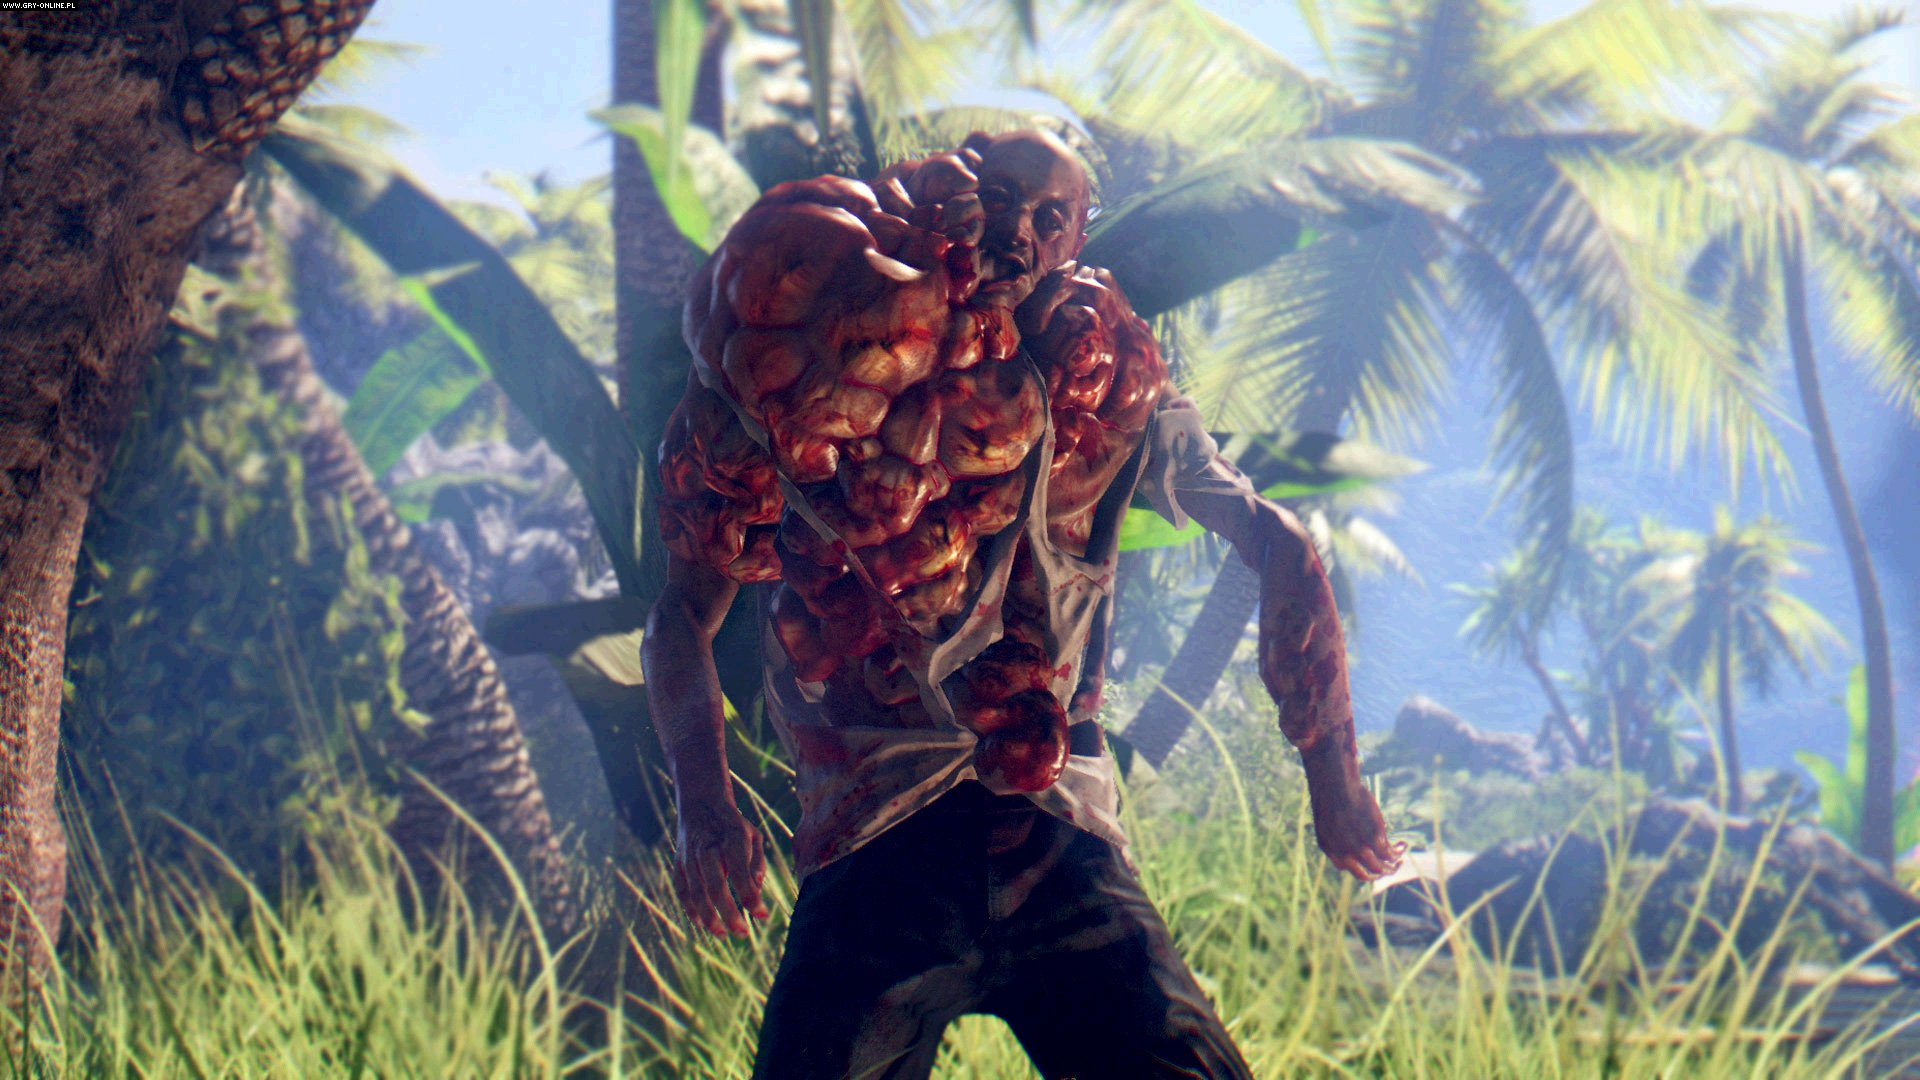 Dead Island: Definitive Collection PC, PS4, XONE Games Image 16/16, Techland, Deep Silver / Koch Media